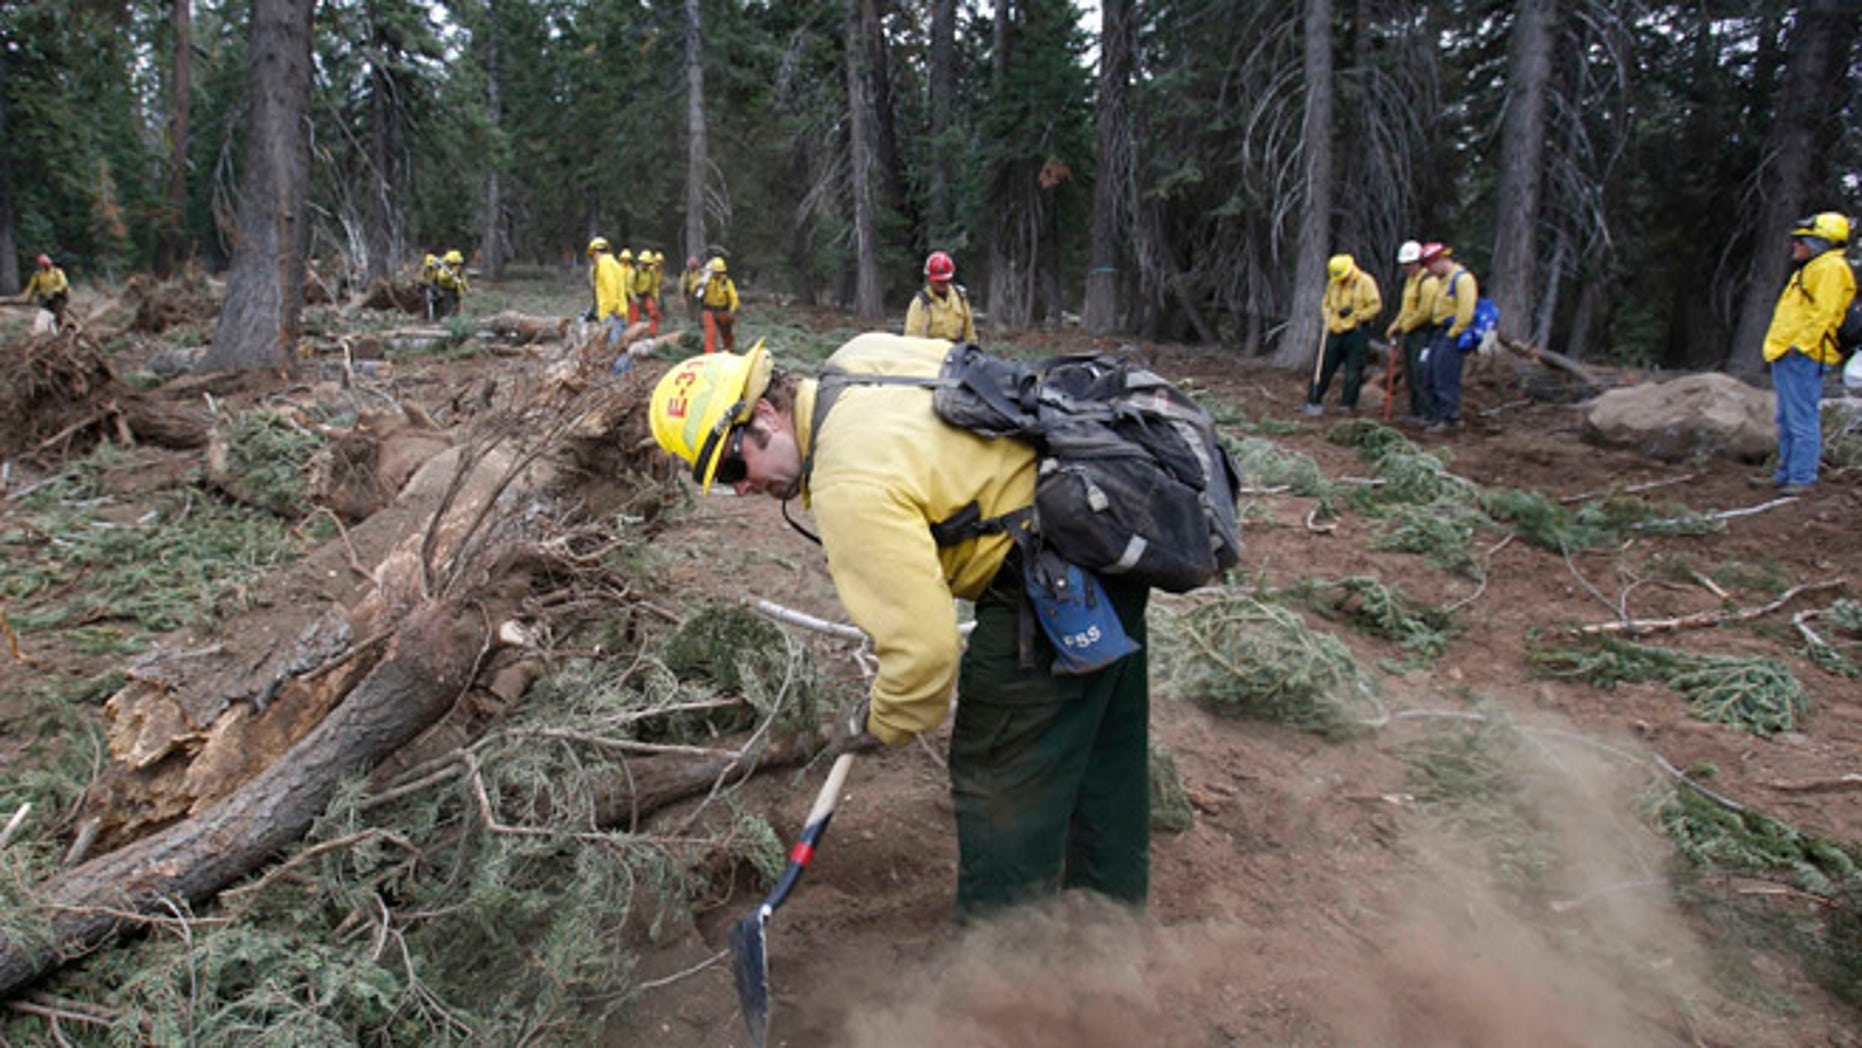 Sept. 25, 2013: Scott Small, and other National Forest Service crew members work to restore terrain that was bulldozed for a firebreak in the battle against Rim Fire on a nordic ski trail along Dodge Ridge in the Stanislaus National Forest, near Tuolumne City, Calif. (AP)